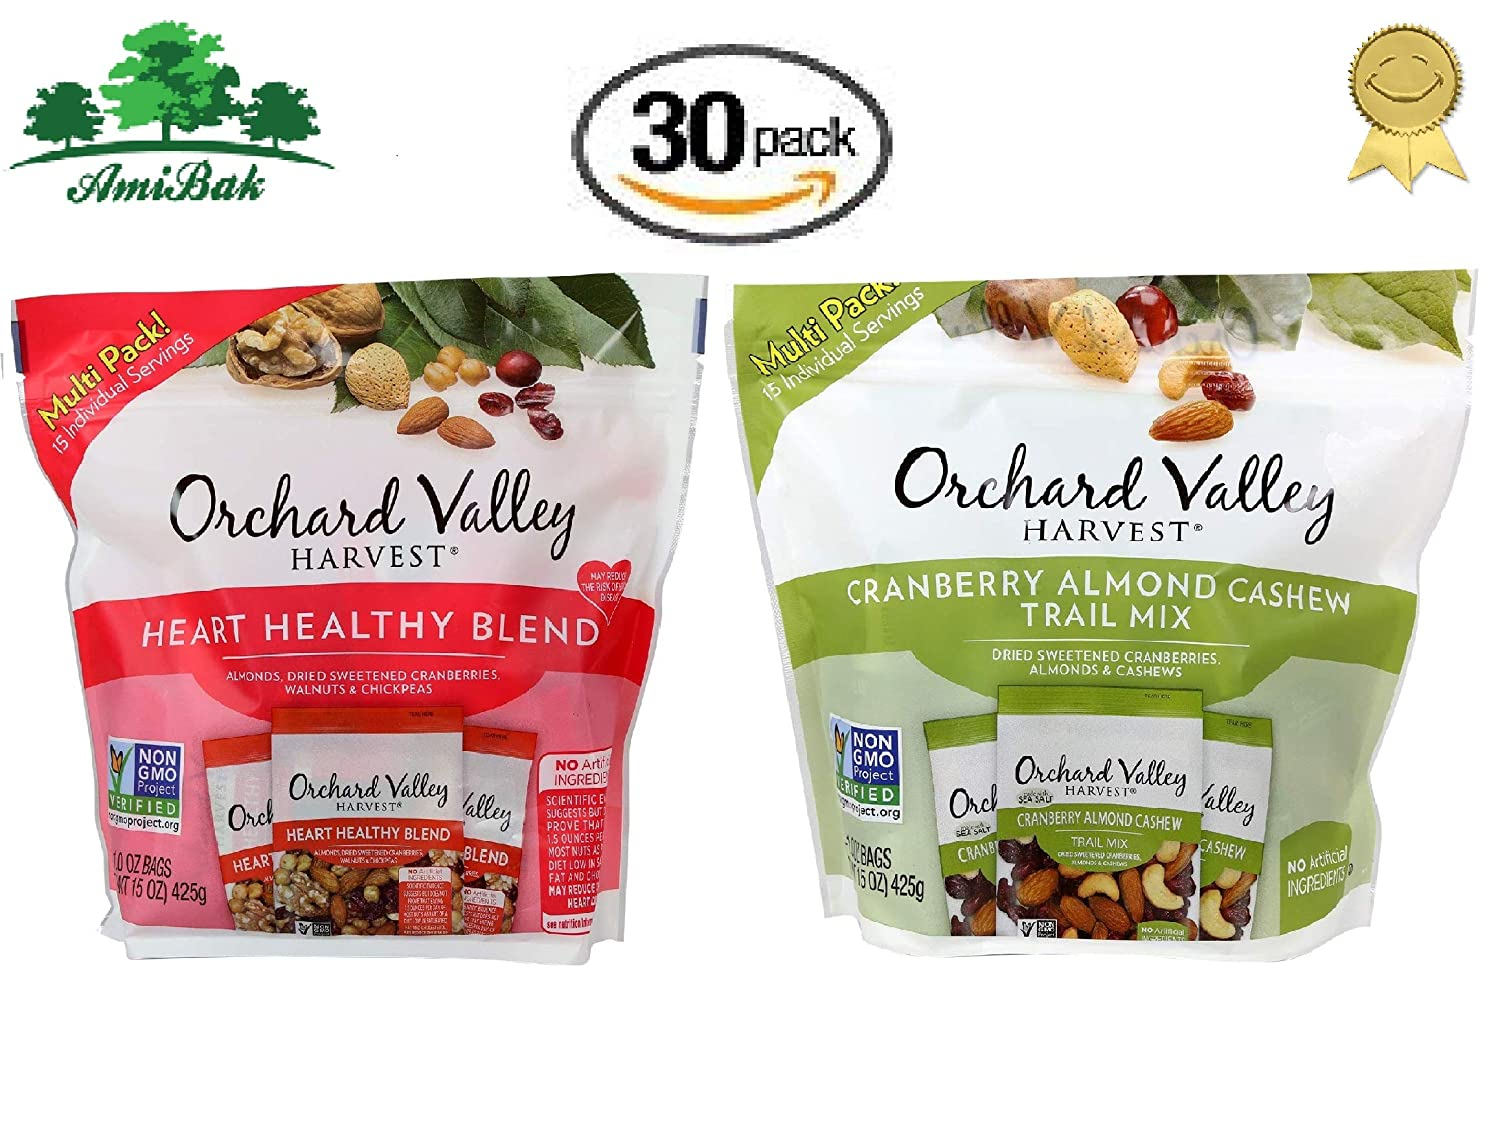 Orchard Valley Harvest Snack Packs - Cranberry Almond Cashew Trail Mix 15 Ct - Heart Healthy Blend Multi Pack 15 Ct. Non-GMO Project Verified, No Artificial Ingredients (30 Individual Packs)